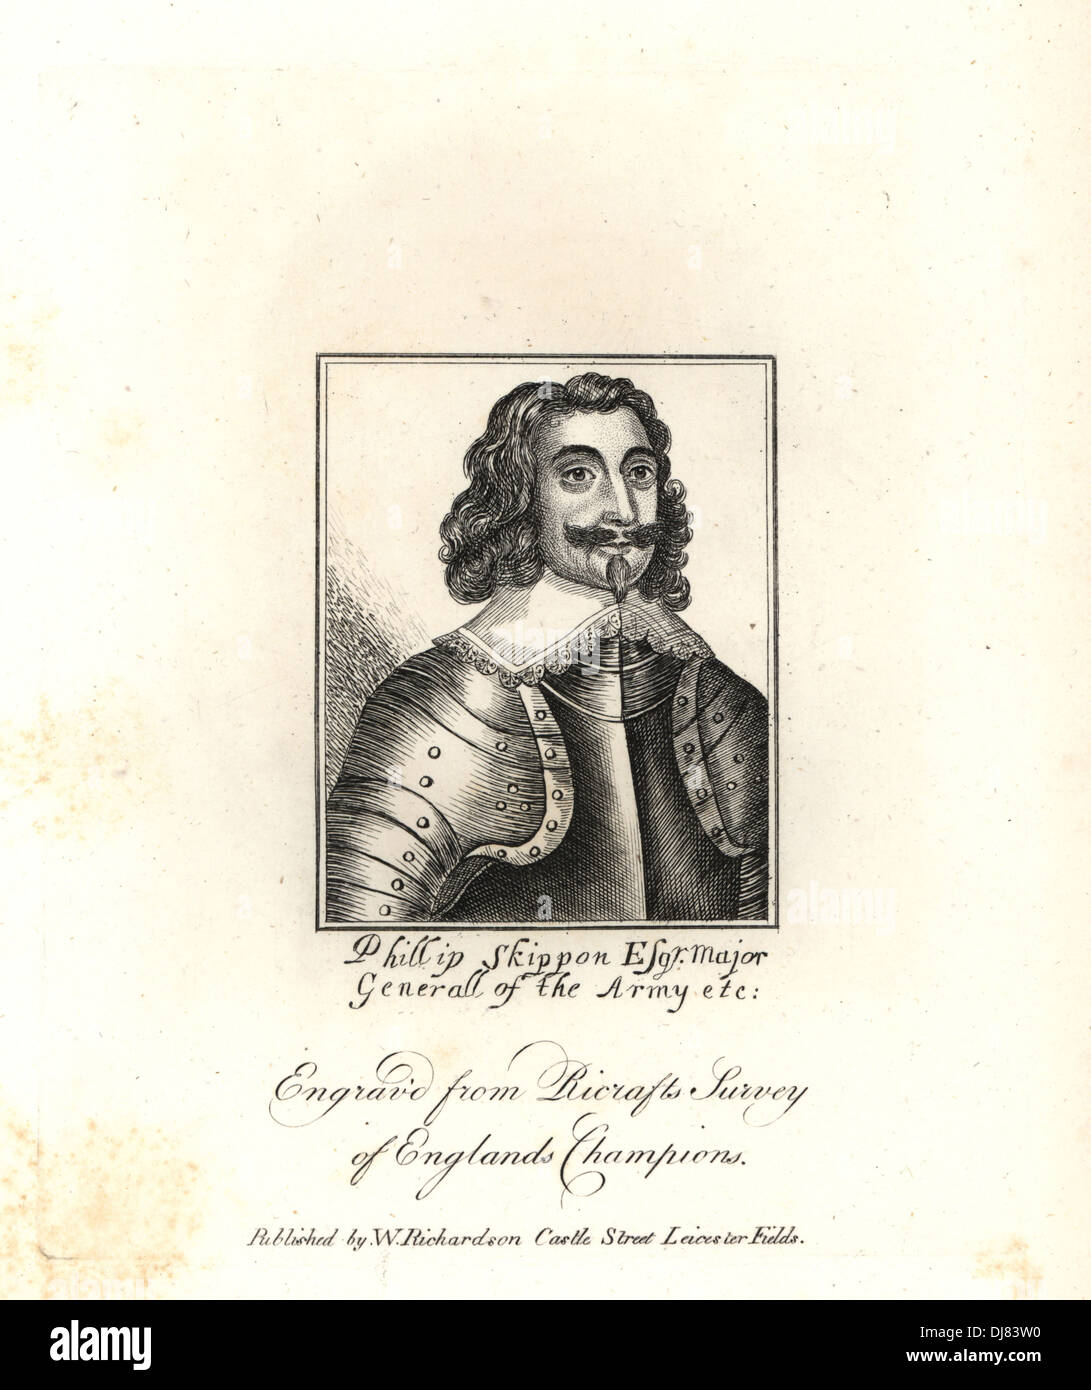 Phillip Skippon, General for the Parliament, 1644. - Stock Image